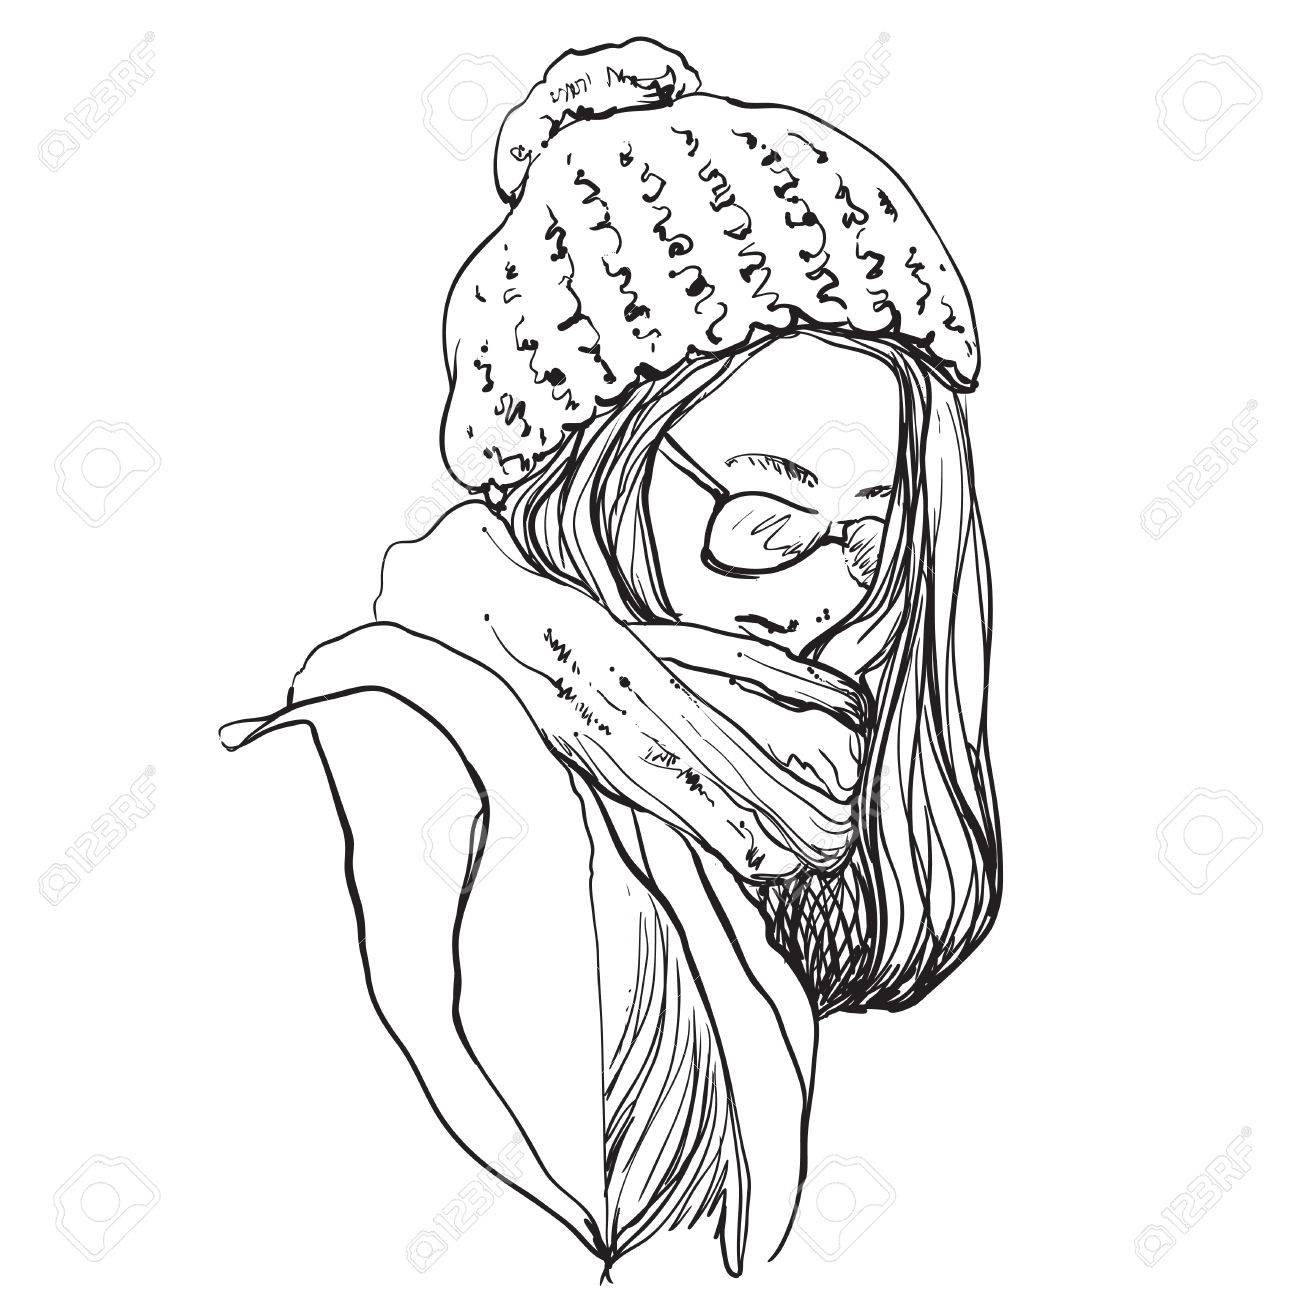 Beautiful Woman In Winter Scarf And Hat Fashion Illustration Royalty Free Cliparts Vectors And Stock Illustration Image 66960015